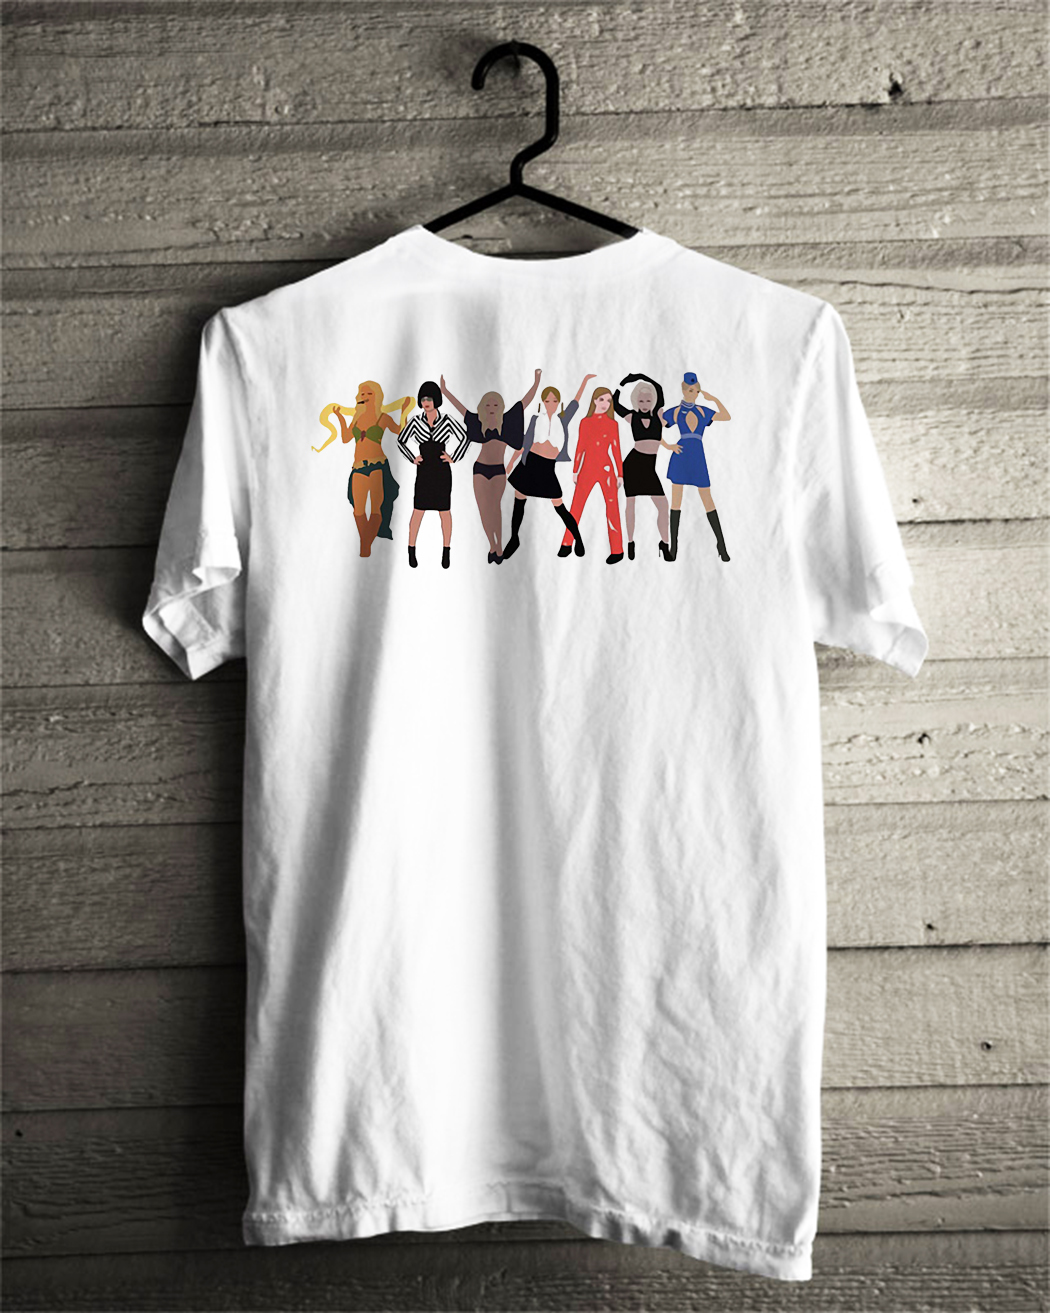 Britney Spears outfit evolution shirt